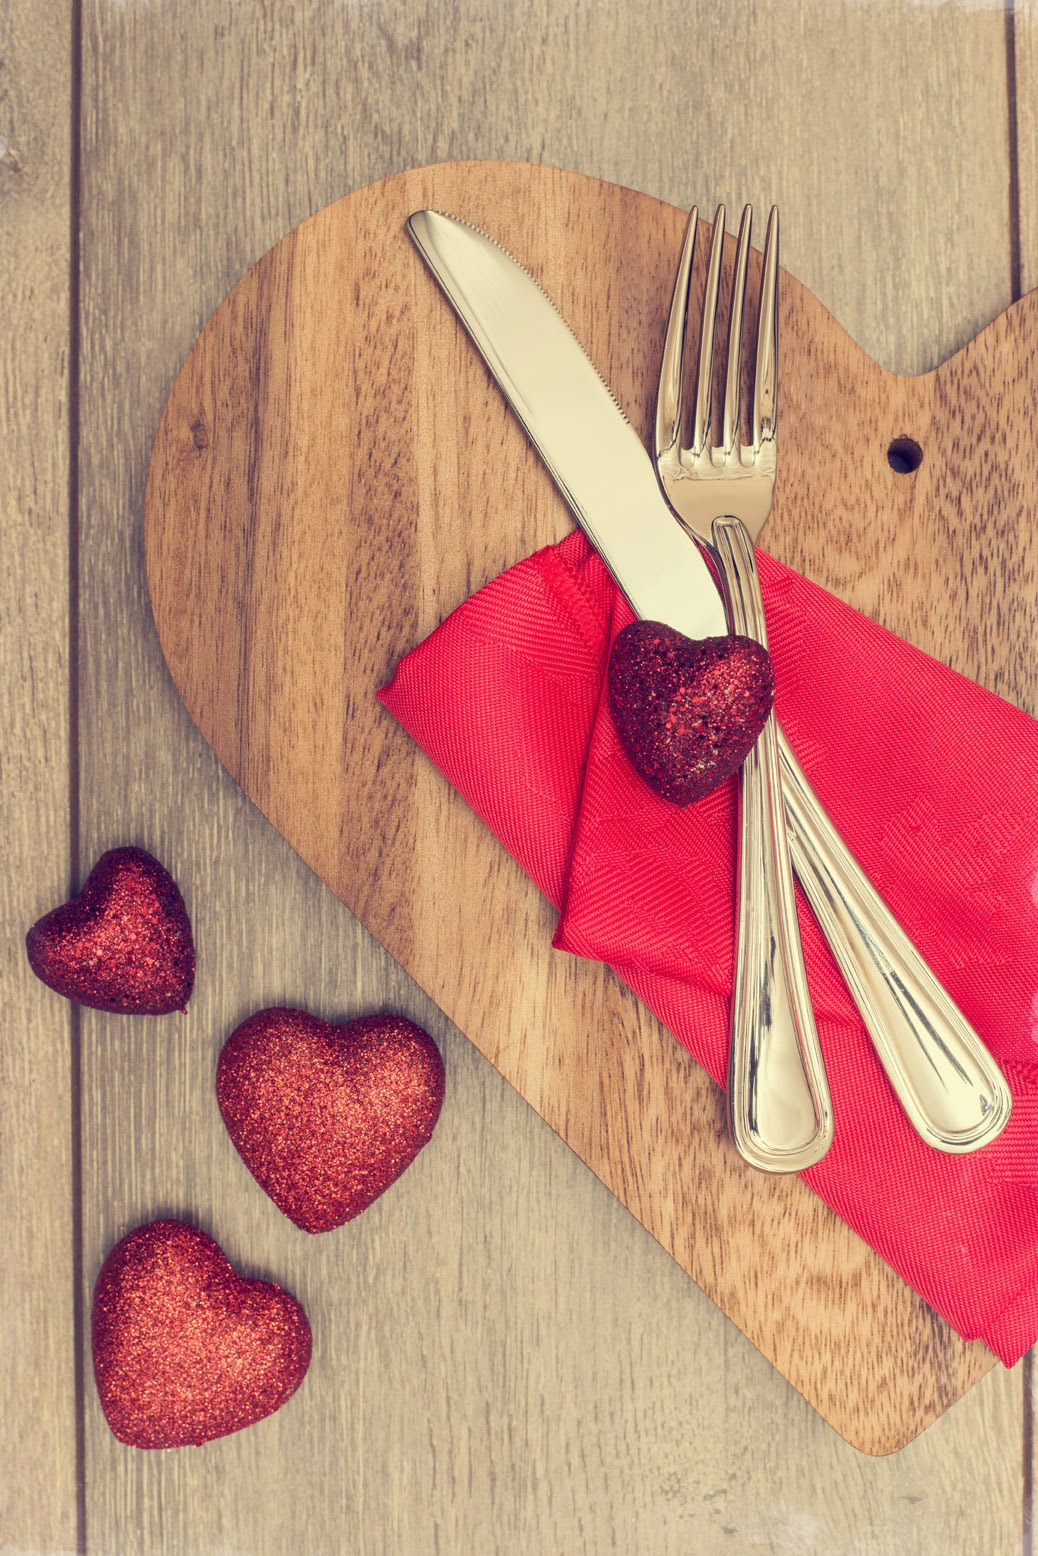 Utensils and hearts on cutting board and table